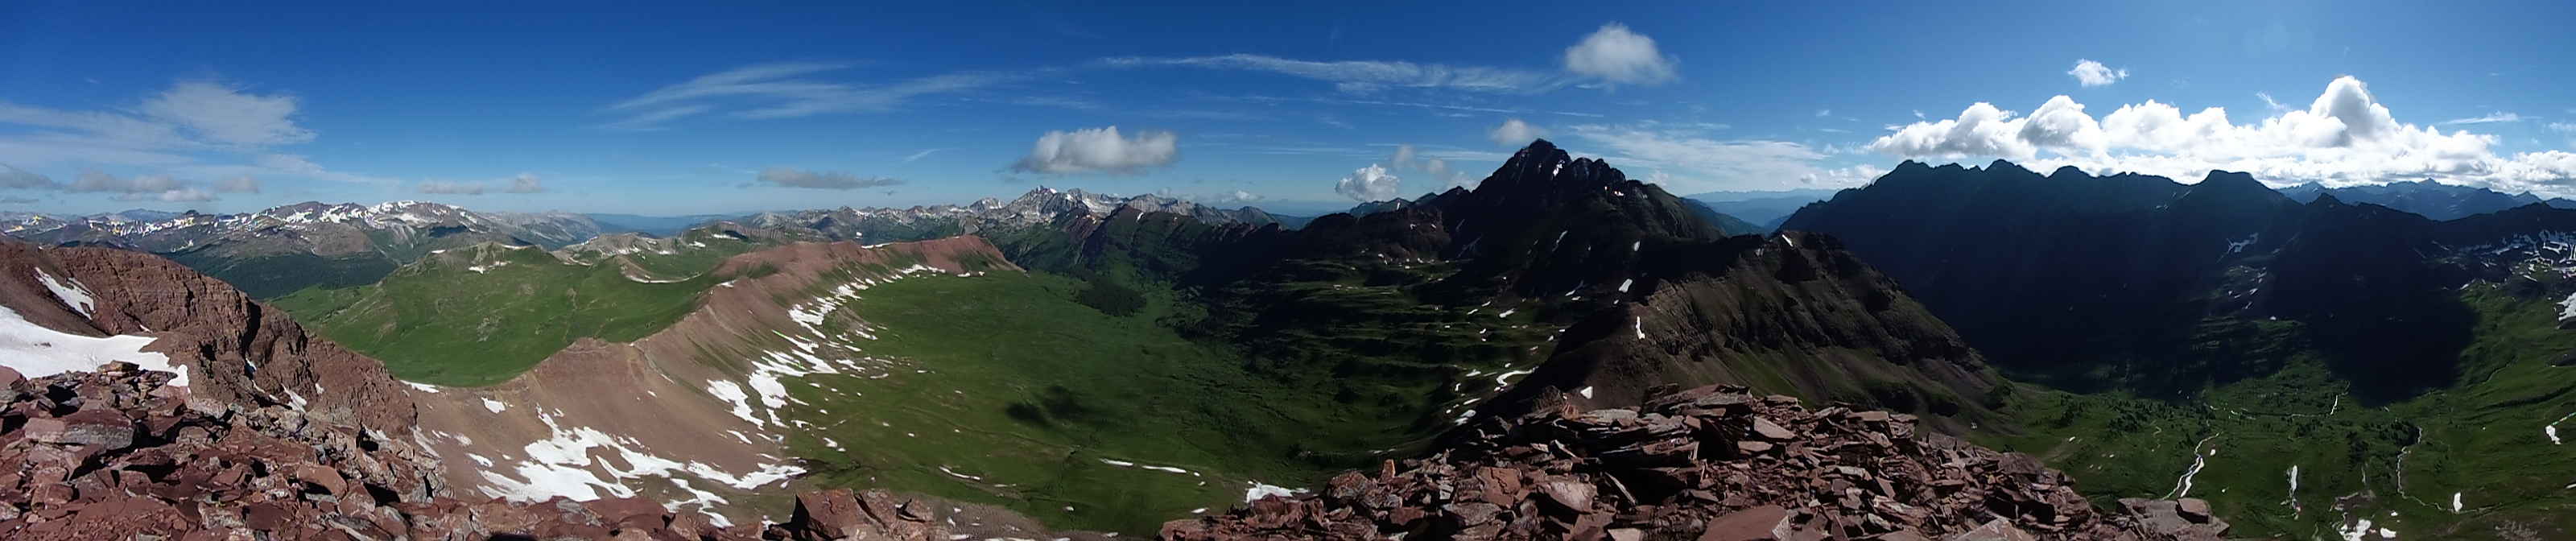 Pano from Belleview's summit.